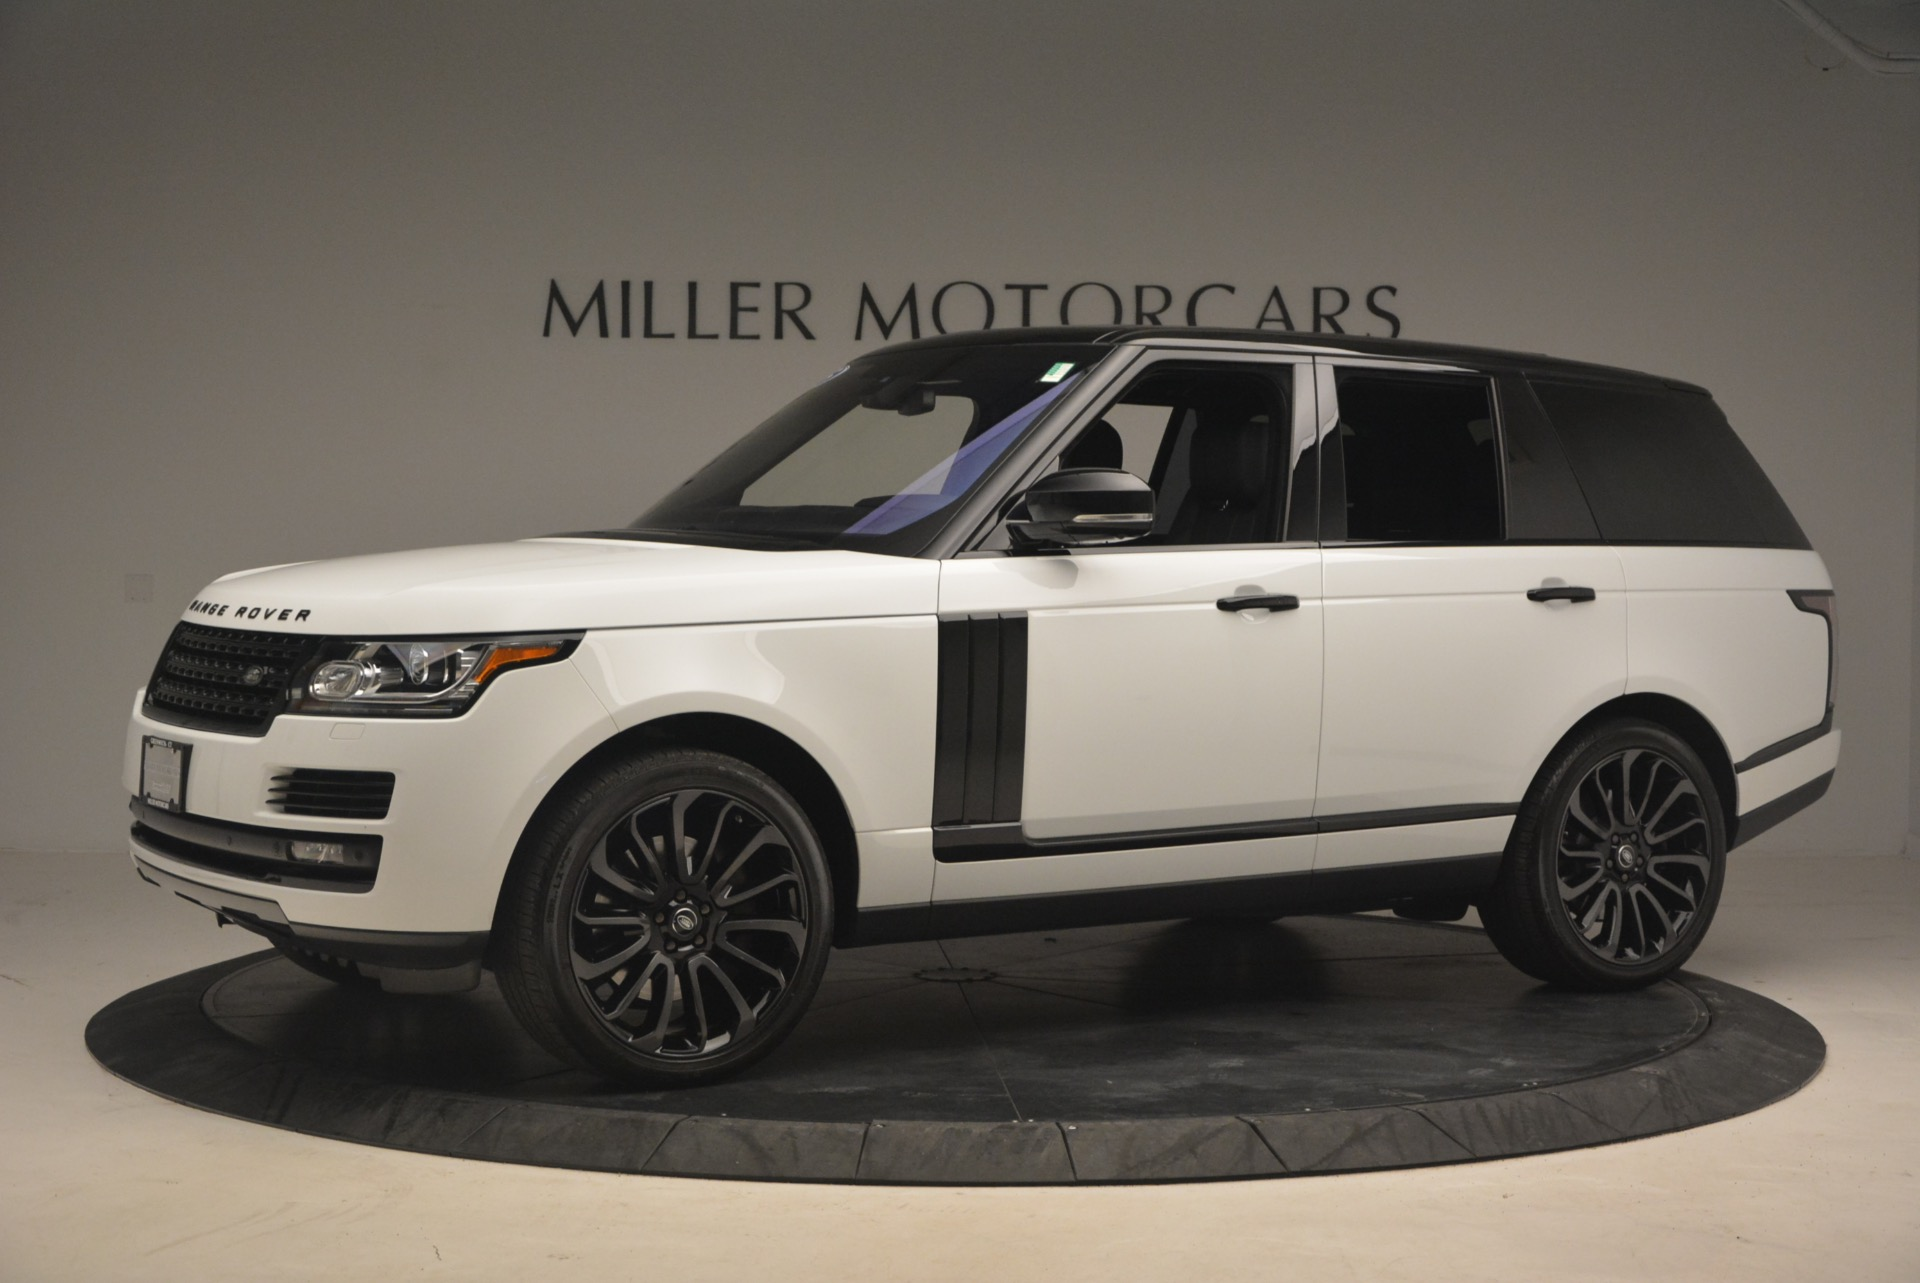 Used 2015 Land Rover Range Rover Supercharged For Sale In Greenwich, CT 1292_p2